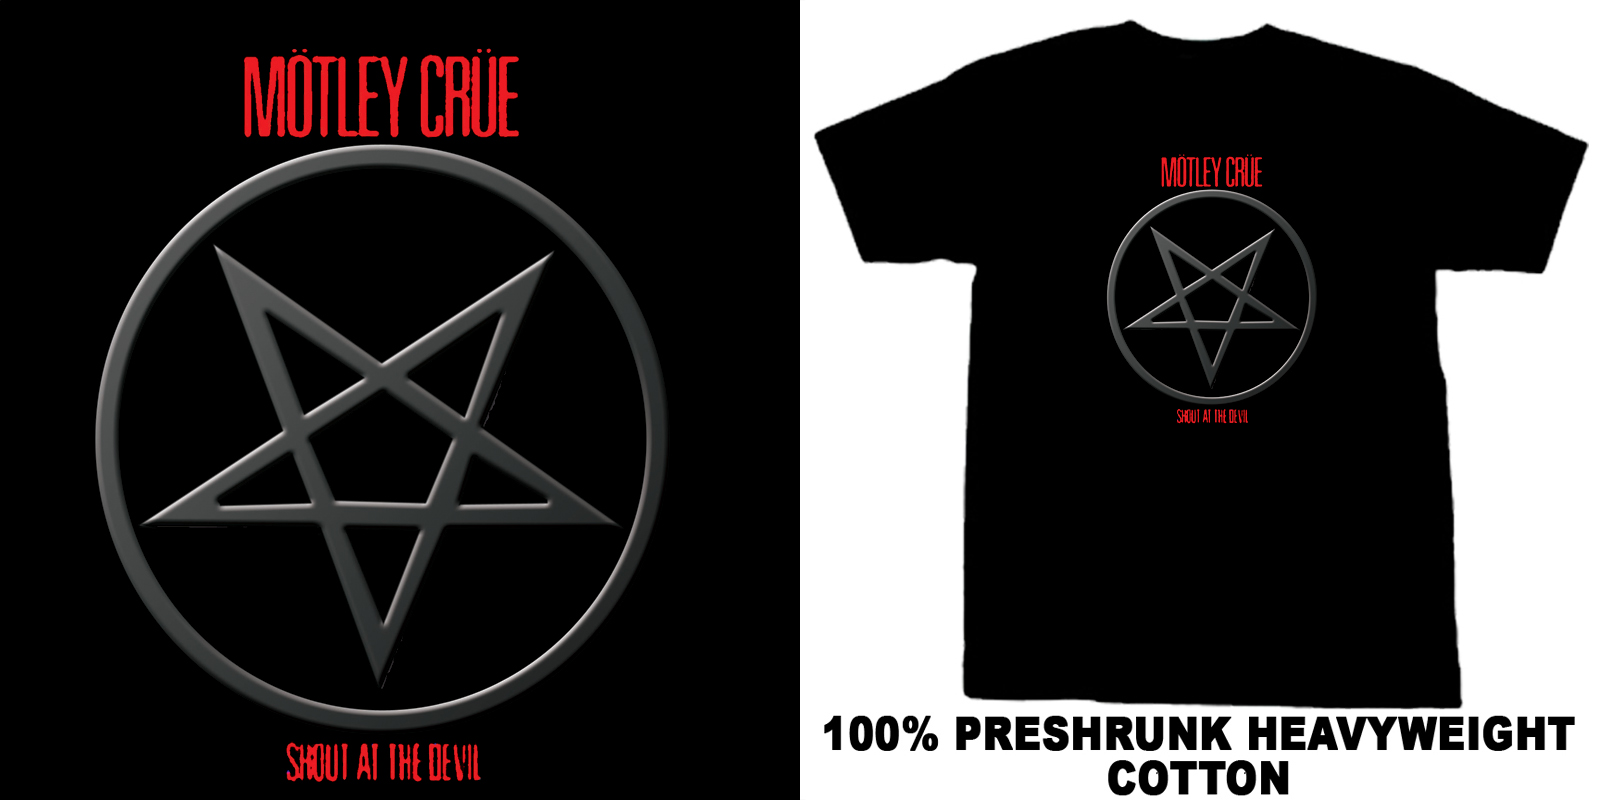 Motley Crue Shout at the devil faded & distorted  T Shirt